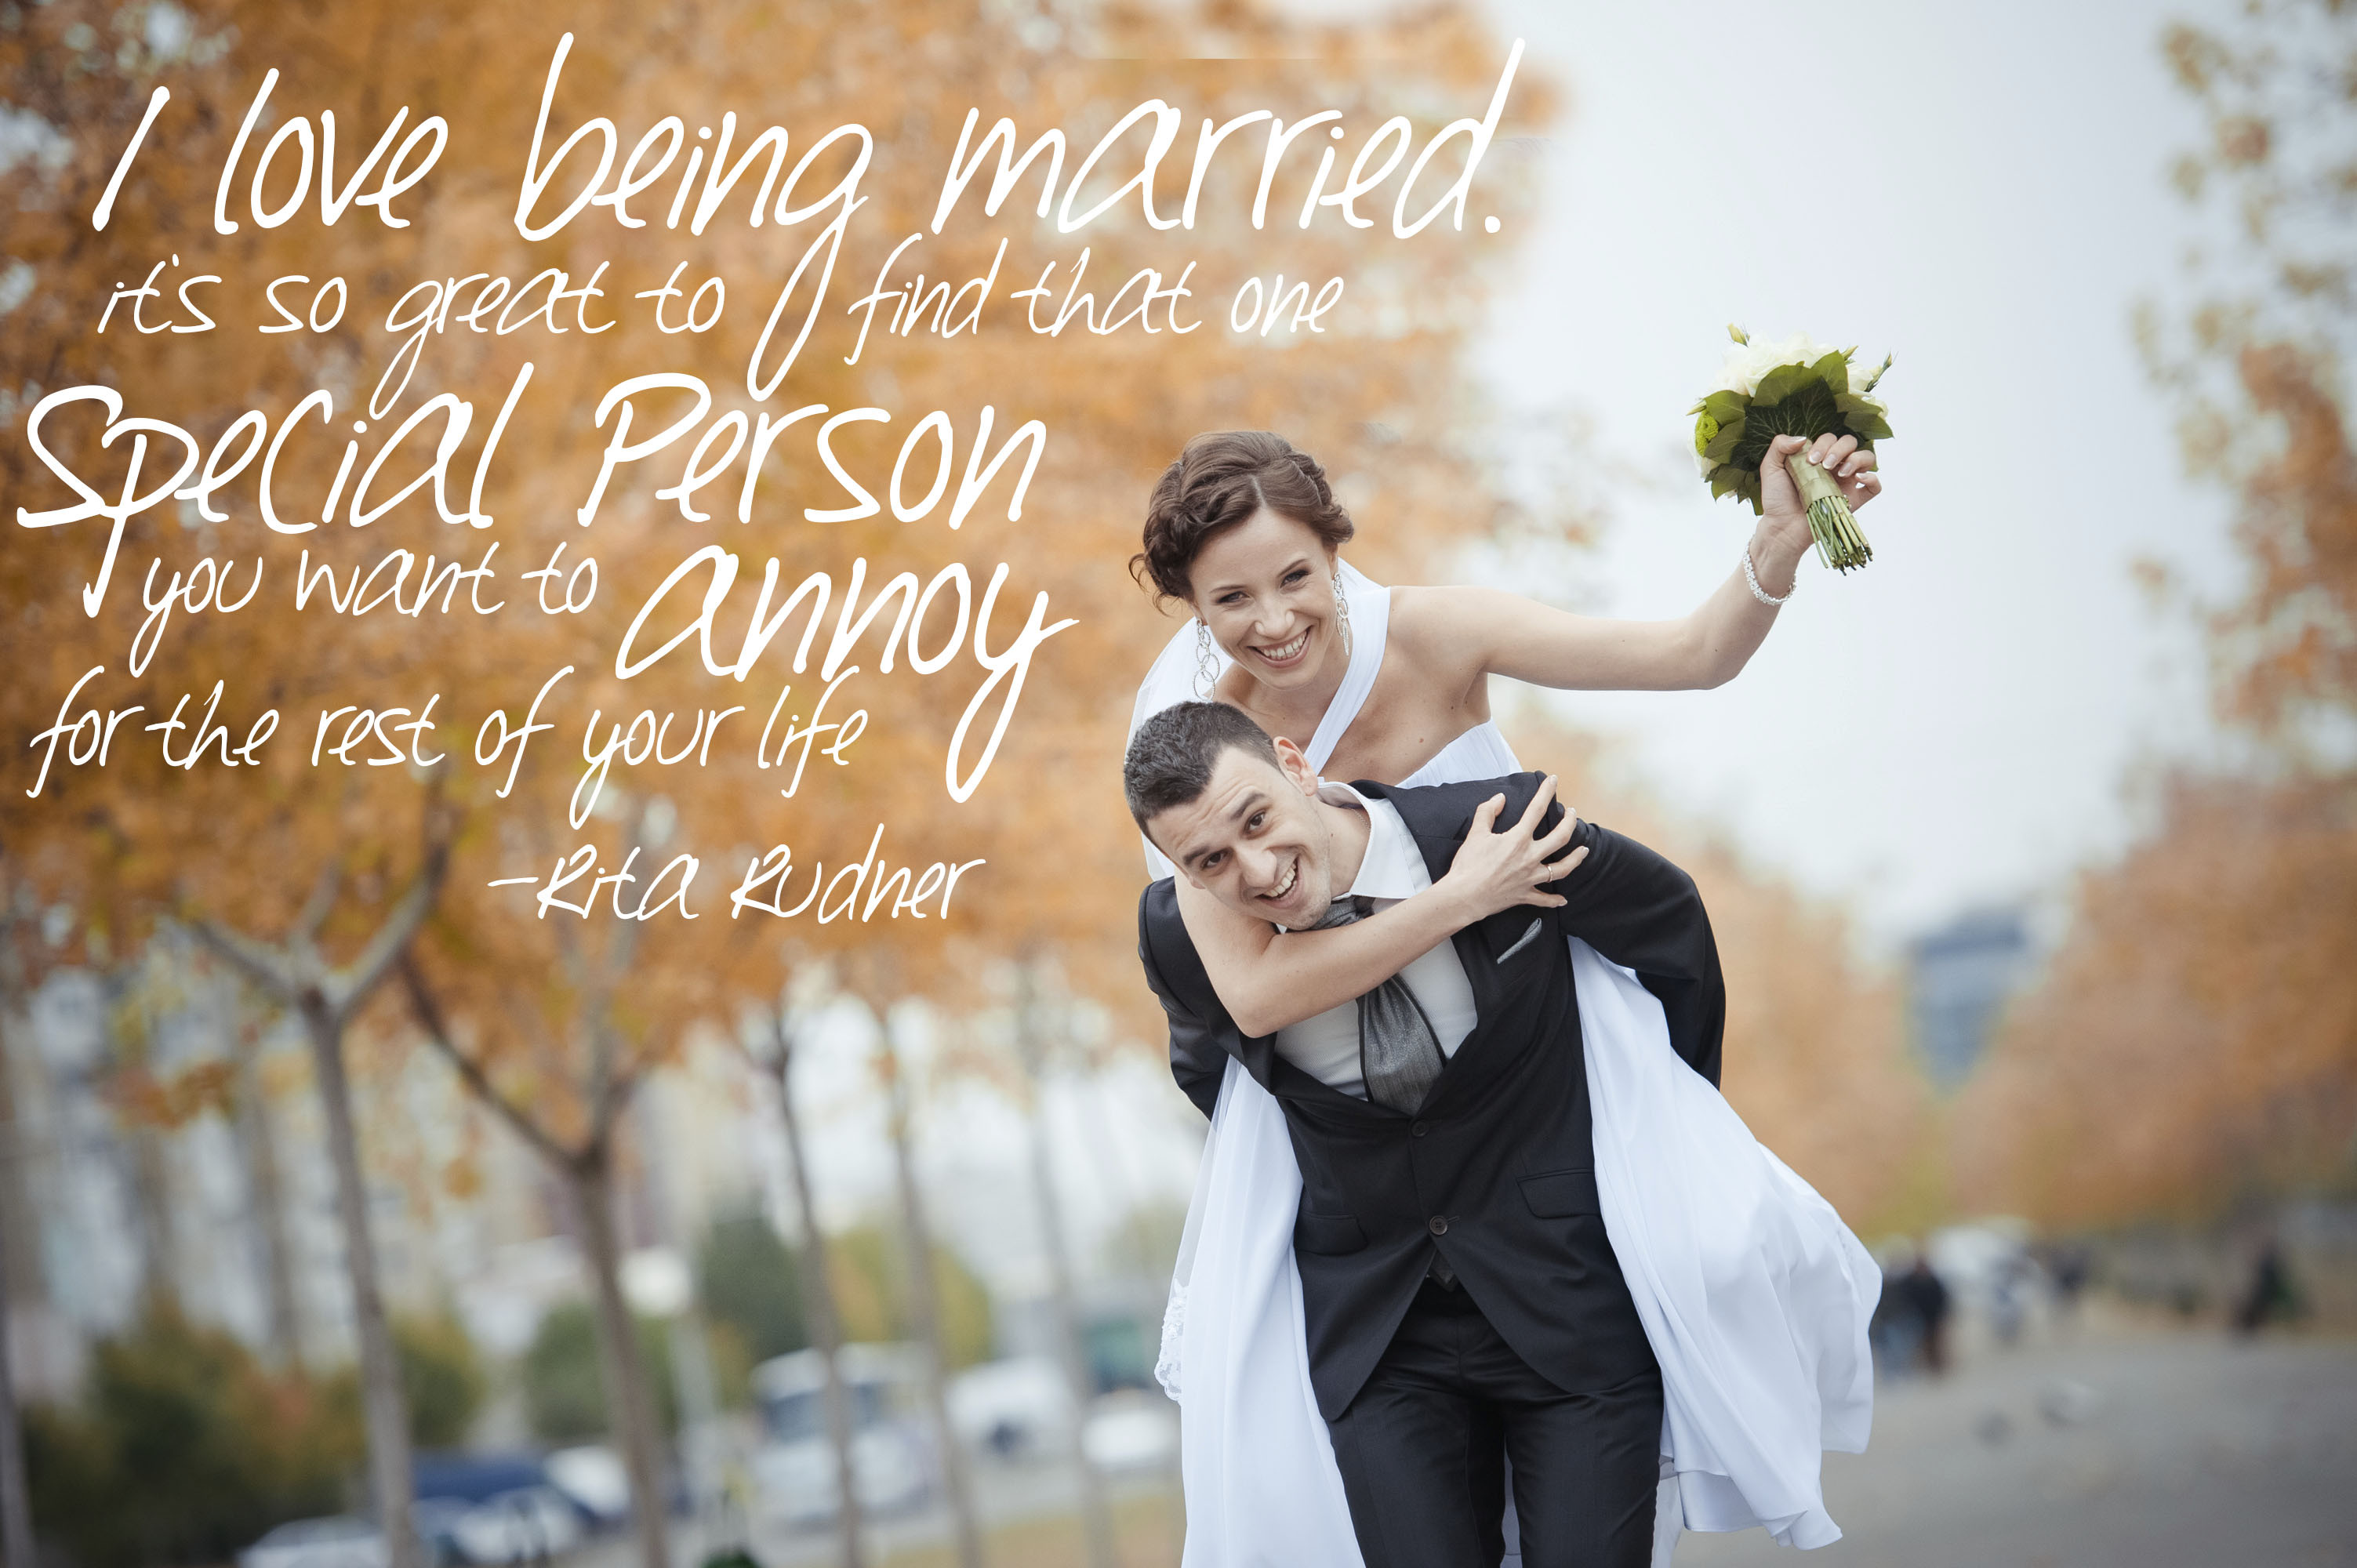 Romantic Marriage Quote  15 Romantic Quotes to on Valentine's Day American